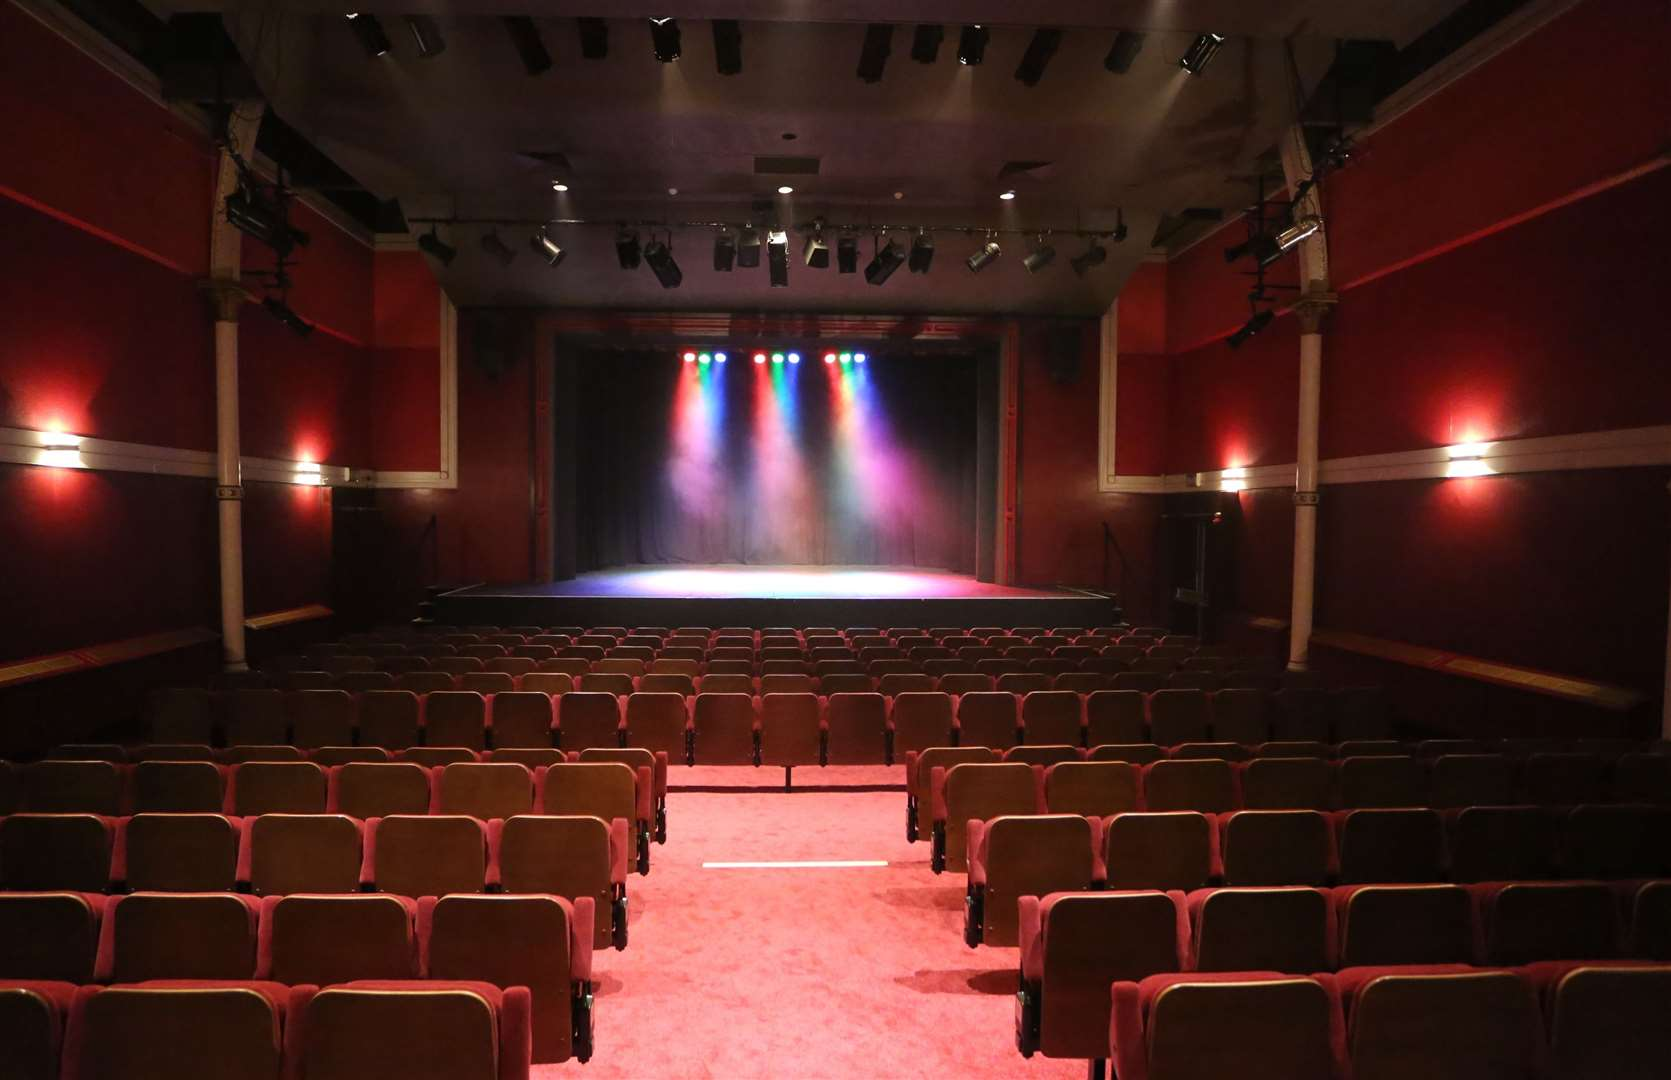 There has been no live theatre at the Hazlitt since March Picture by: Martin Apps